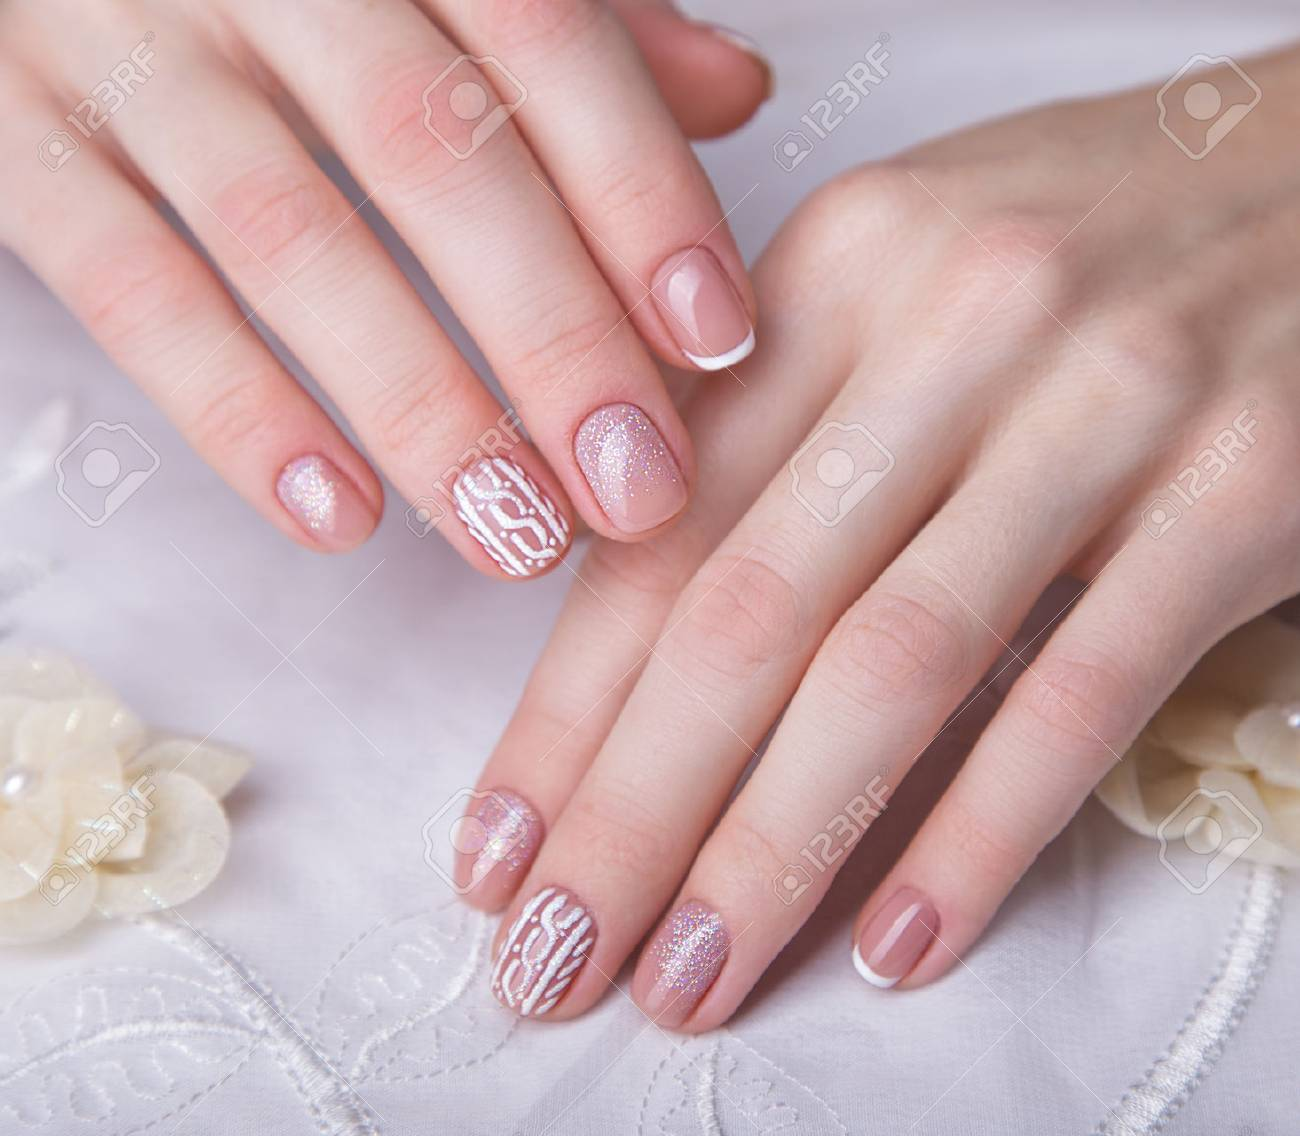 Snow White Manicure On Female Hands. Winter Nail Design. Picture ...